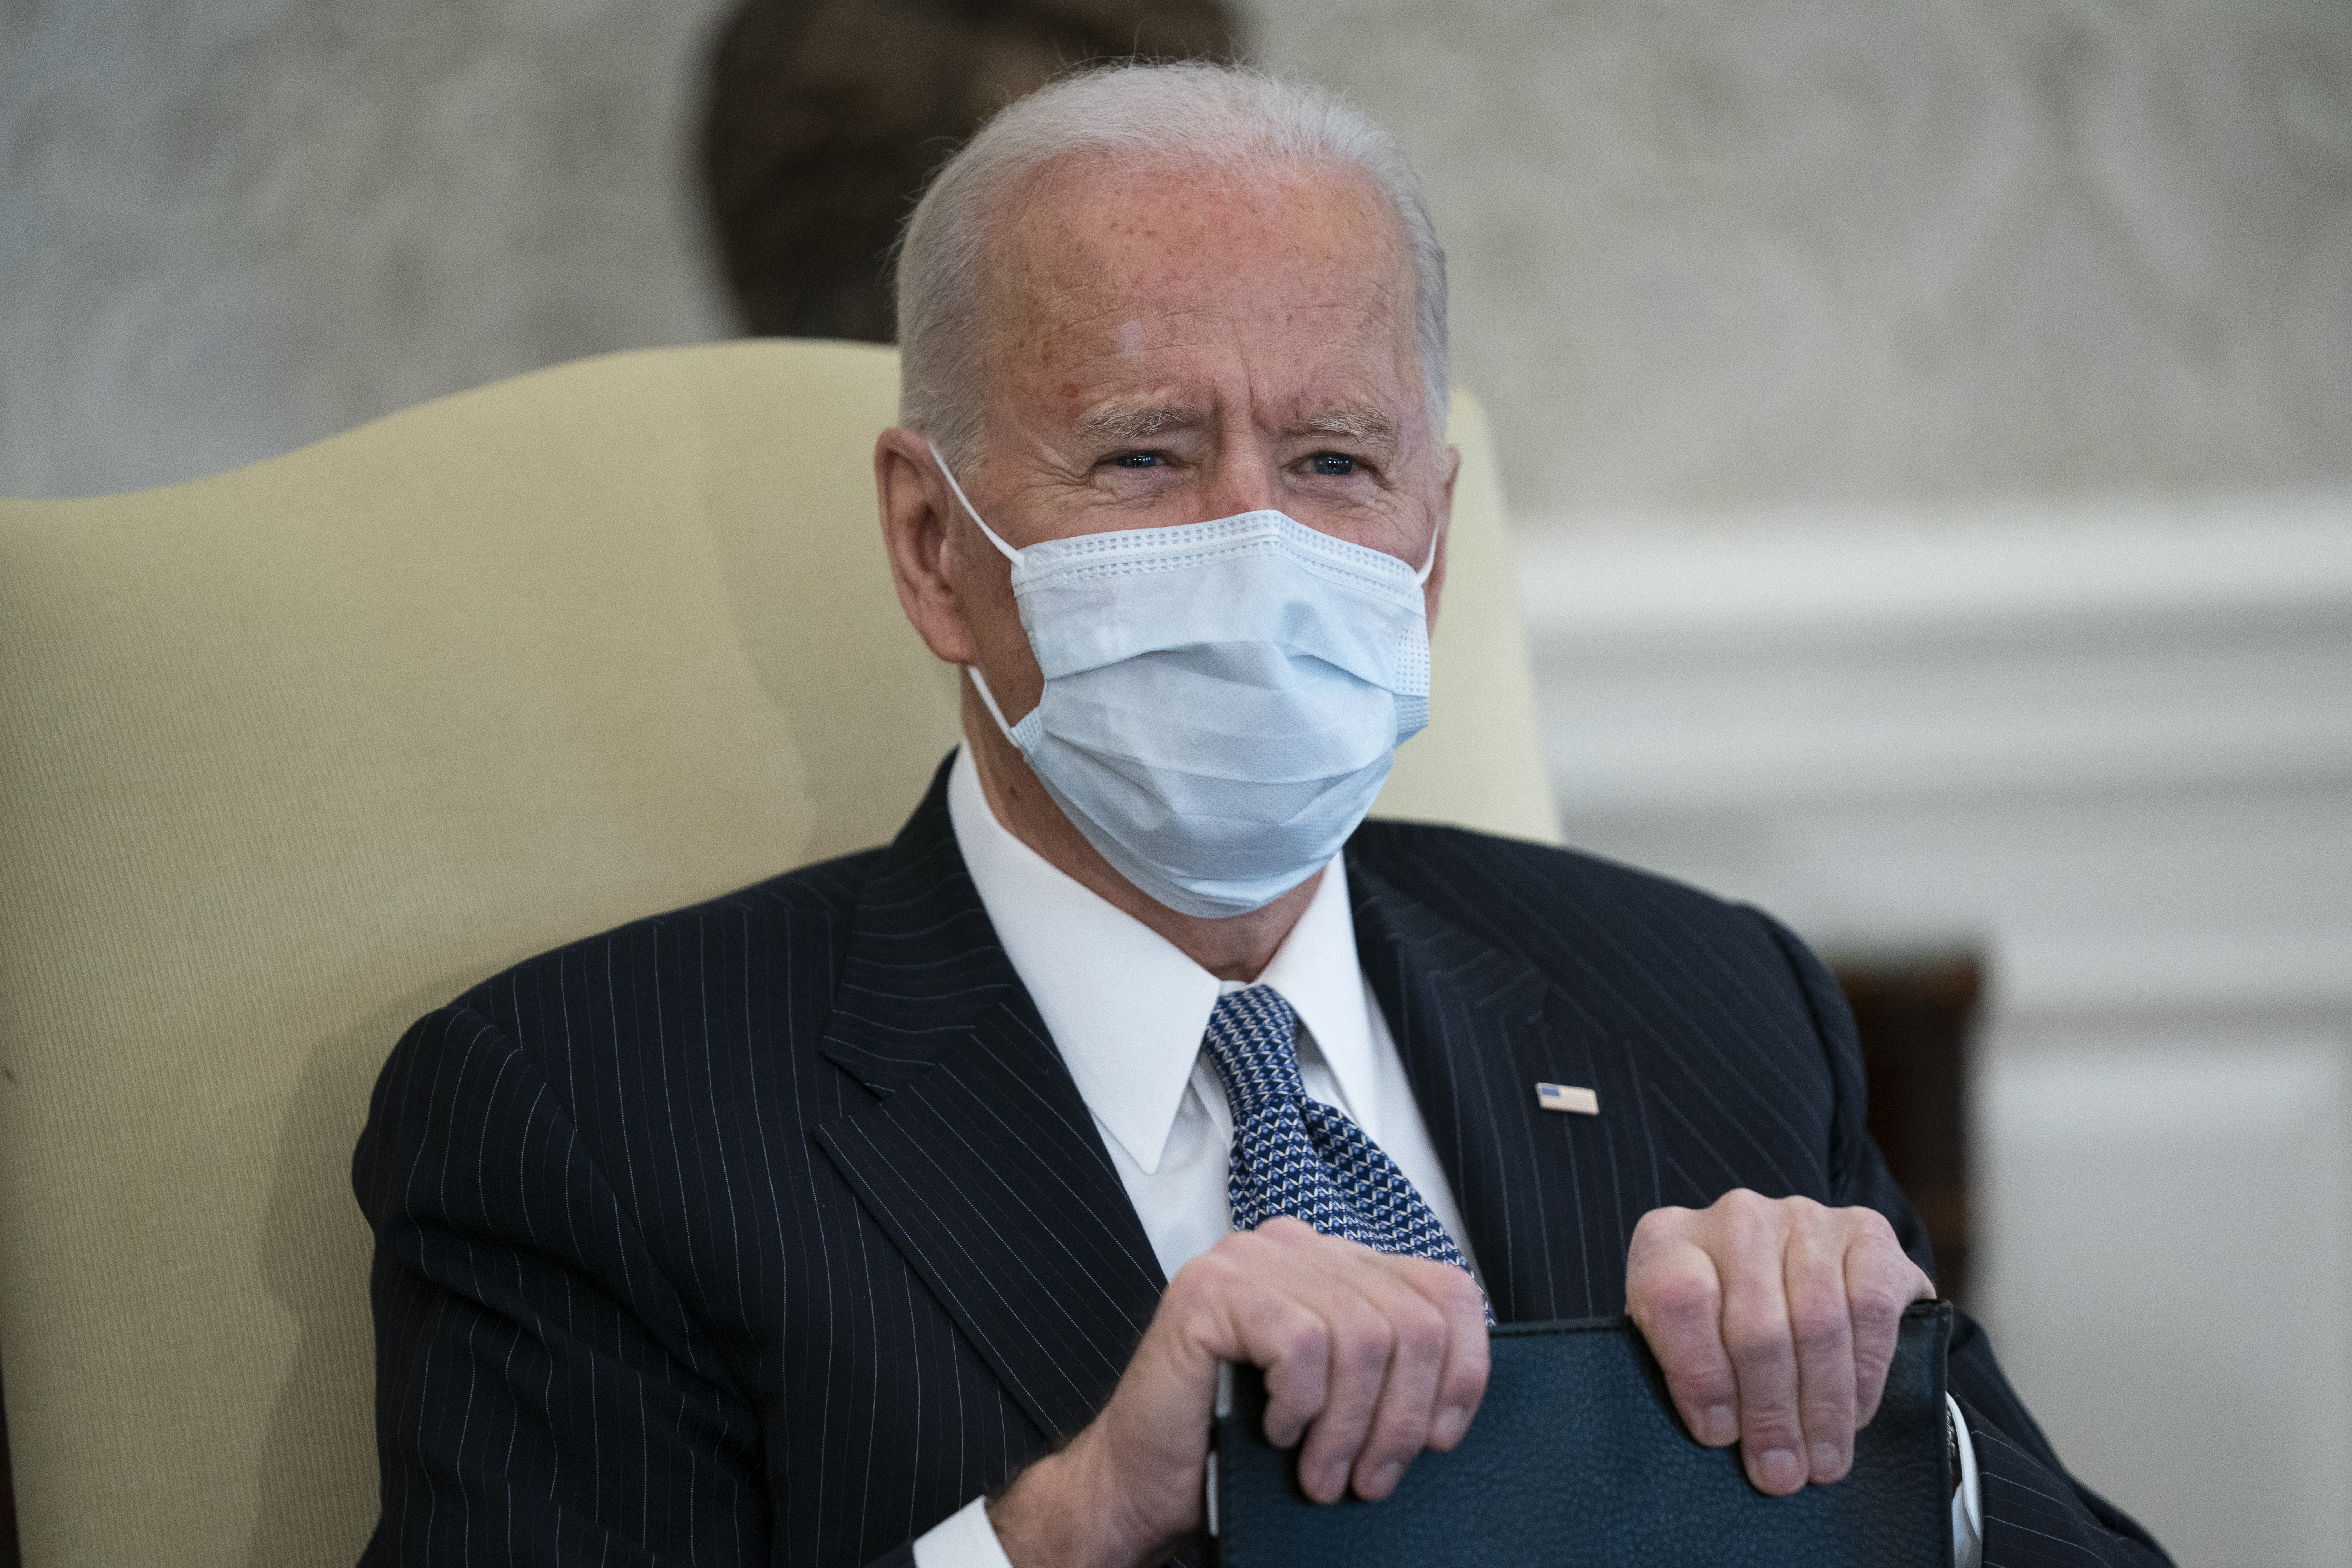 In this Feb. 3, 2021, file photo President Joe Biden meets with Senate Majority Leader Sen. Chuck Schumer of N.Y., and other Democratic lawmakers to discuss a coronavirus relief package, in the Oval Office of the White House in Washington.